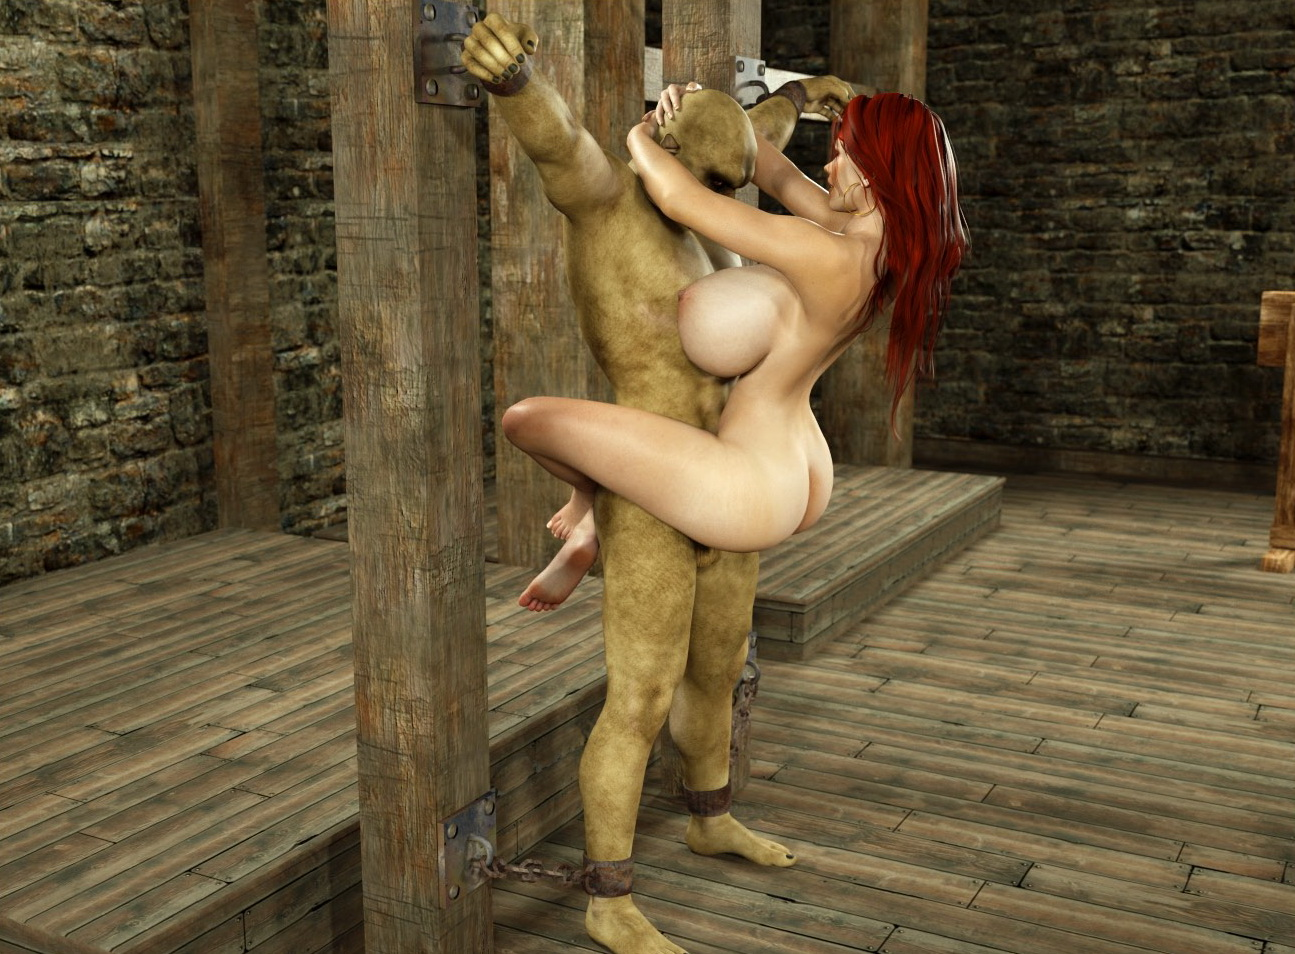 Lara croft fucked by monsters 3gp prons smut tube